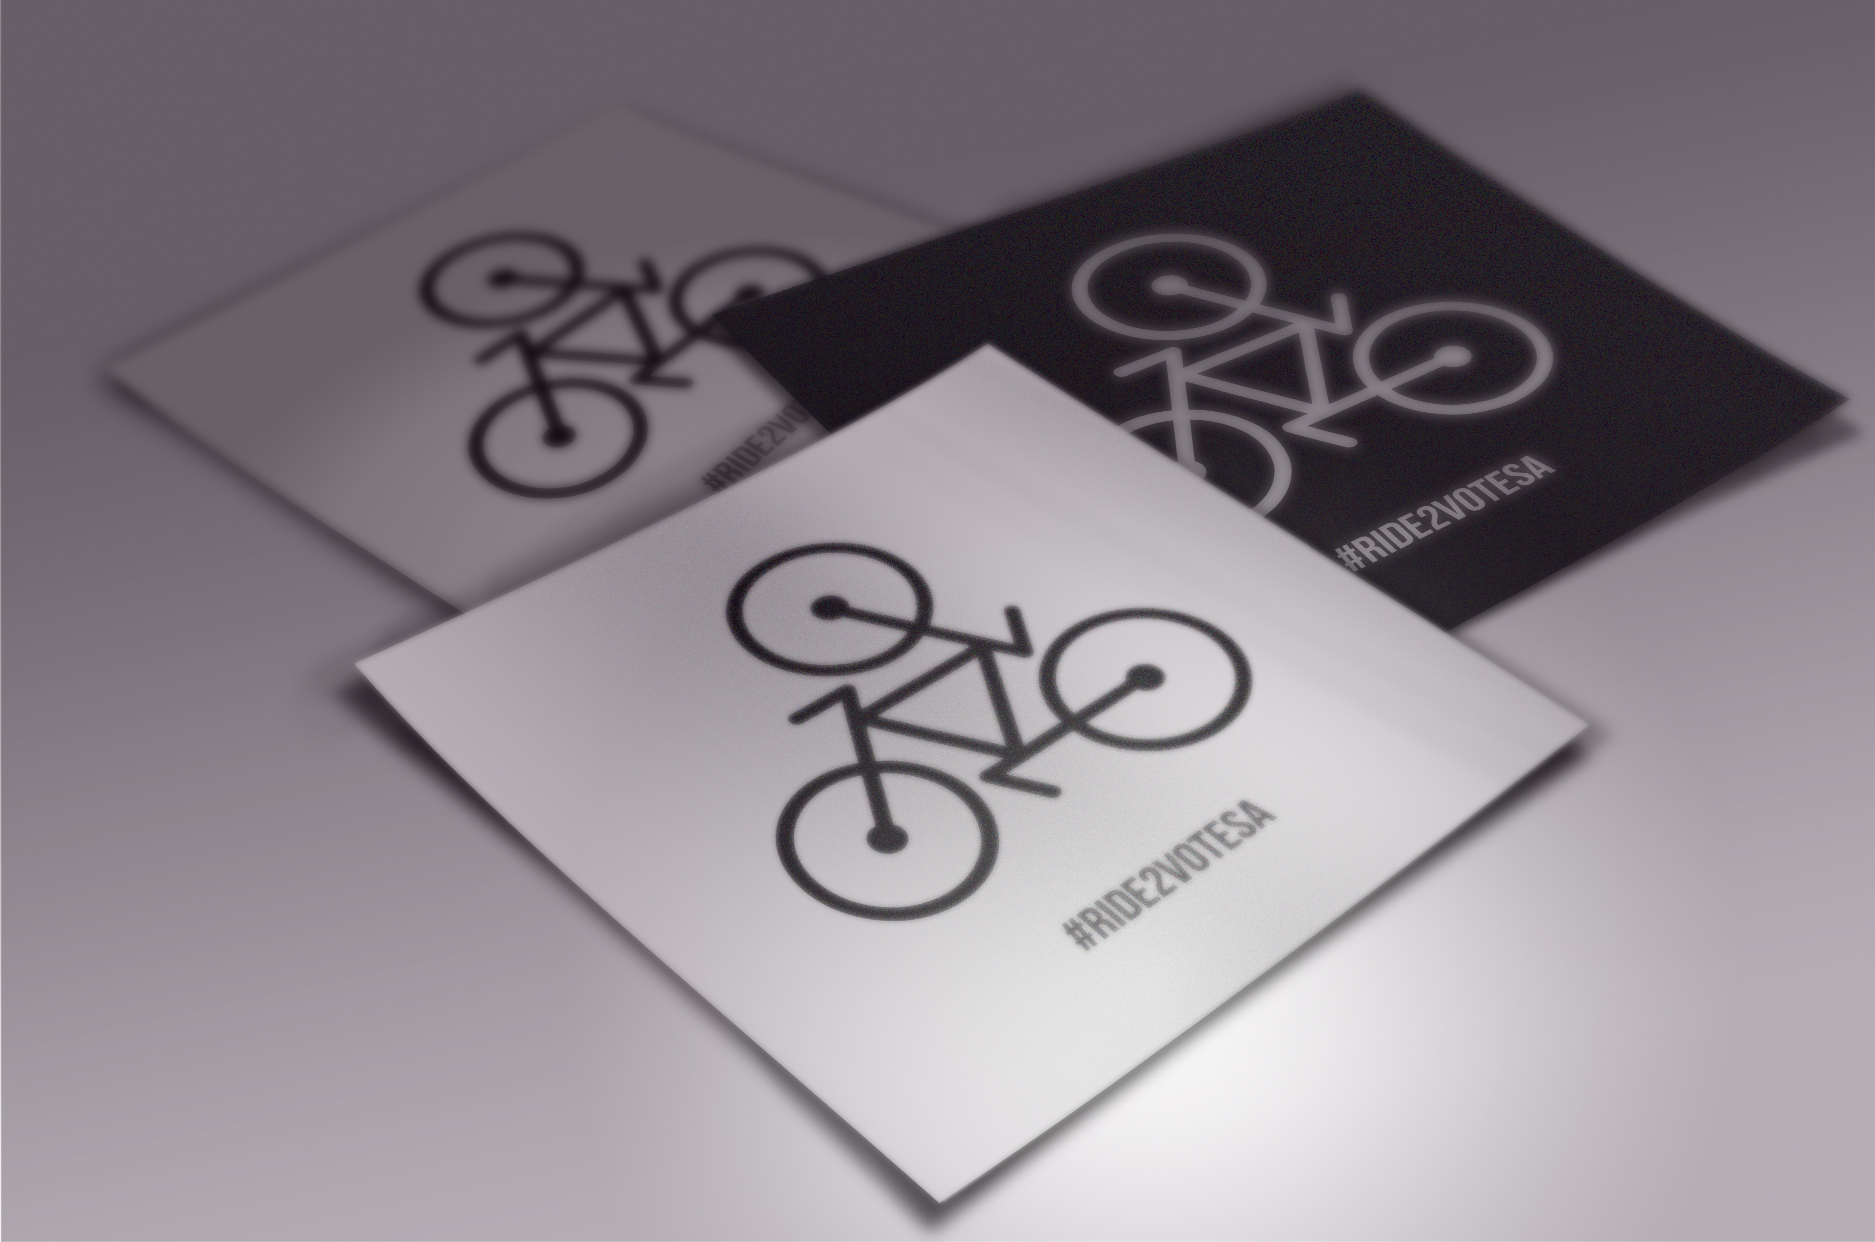 Logo Design by Julie Kvaale - Entry No. 12 in the Logo Design Contest Earn A Bike Coop Logo Design.